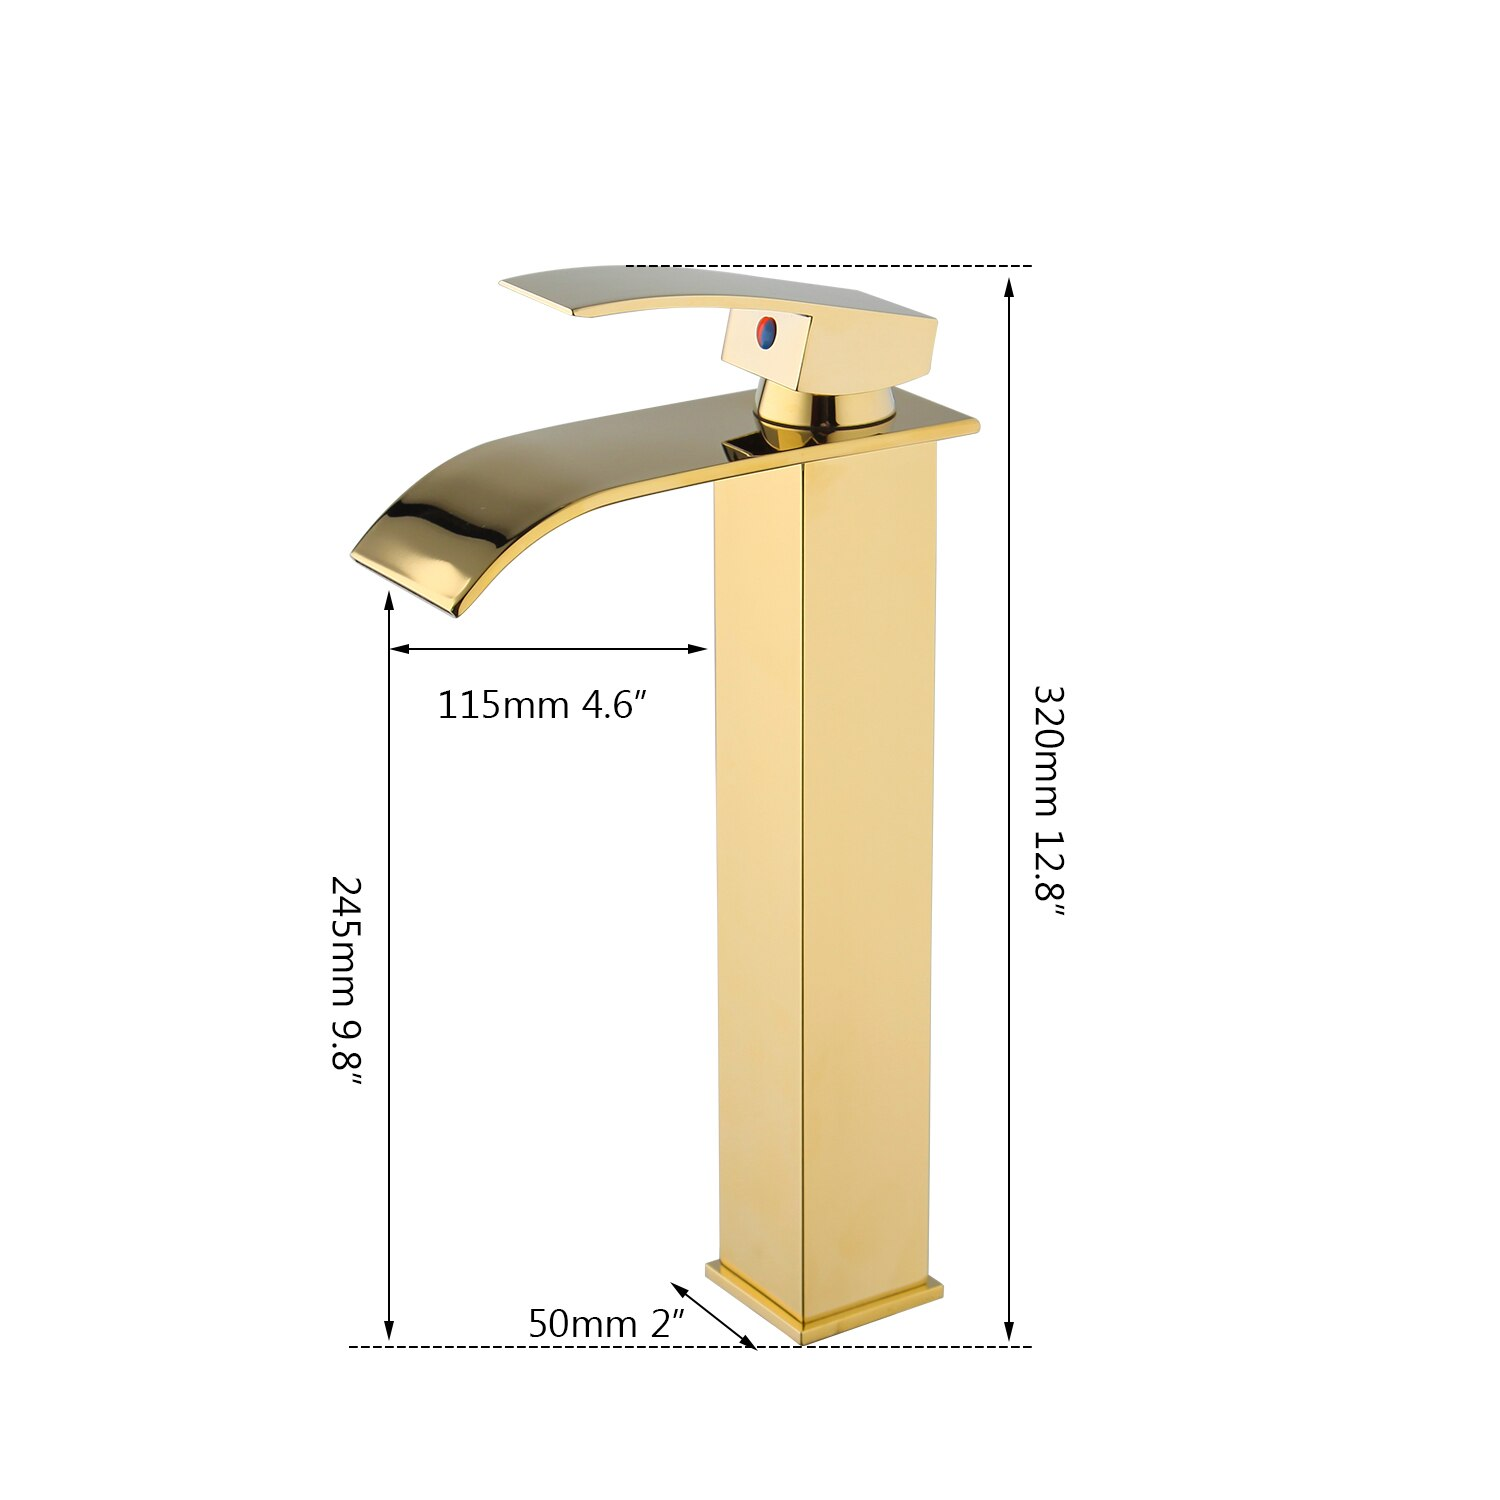 Angular Gold Waterfall Bathroom Faucet Gold Water Taps & Faucets